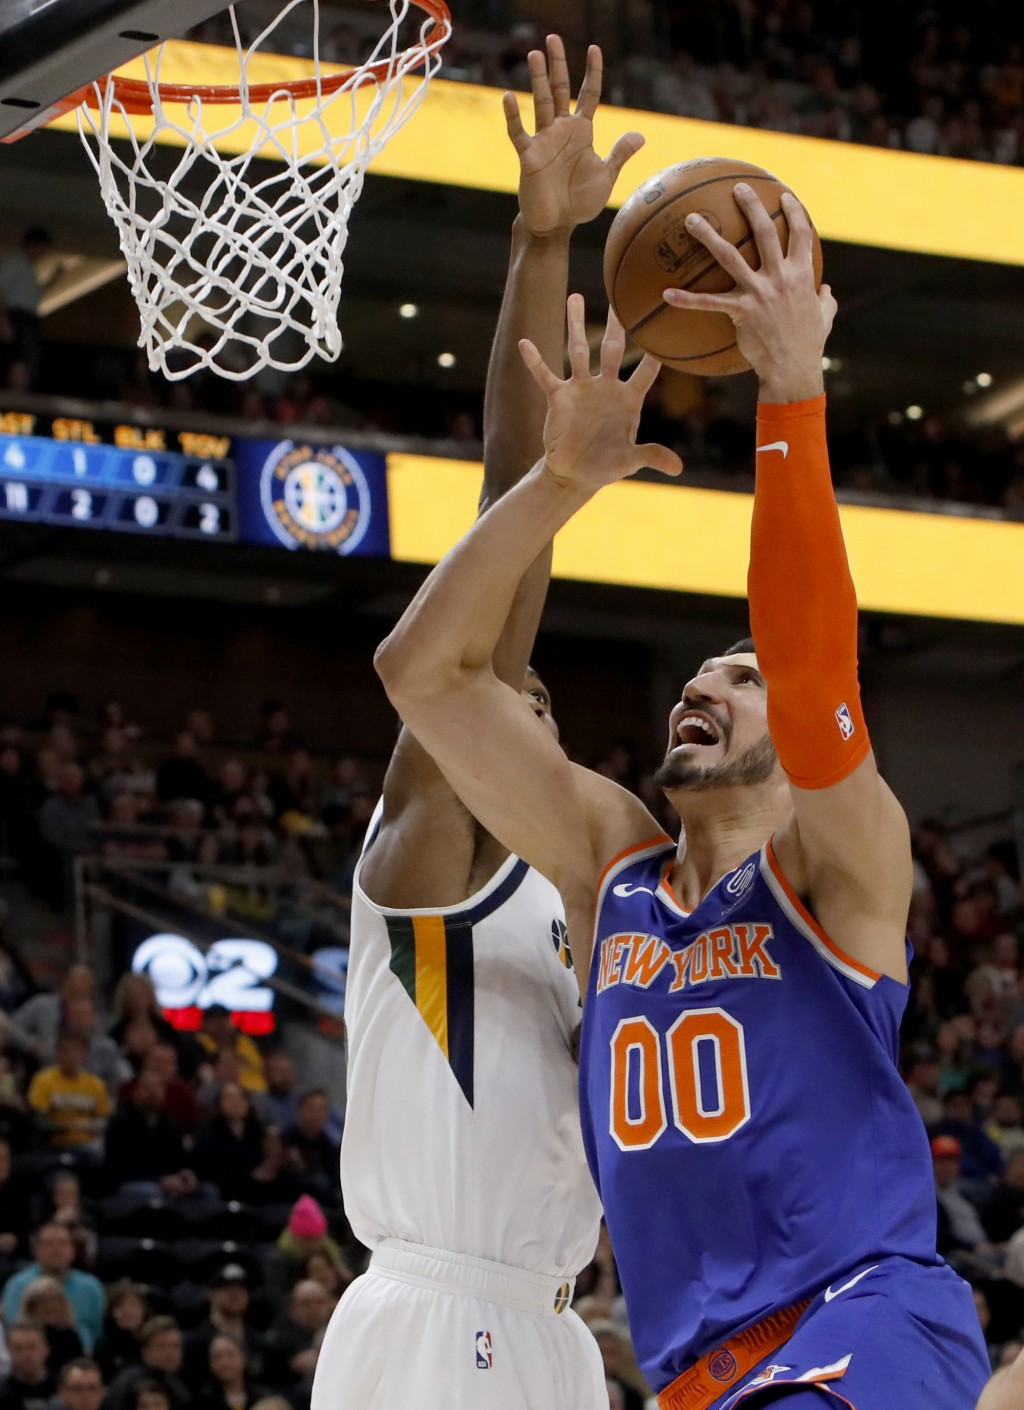 New York Knicks' Enes Kanter (00) attempts a layup as Utah Jazz's Derrick Favors, left, defends in the first half of an NBA basketball game on Saturda...